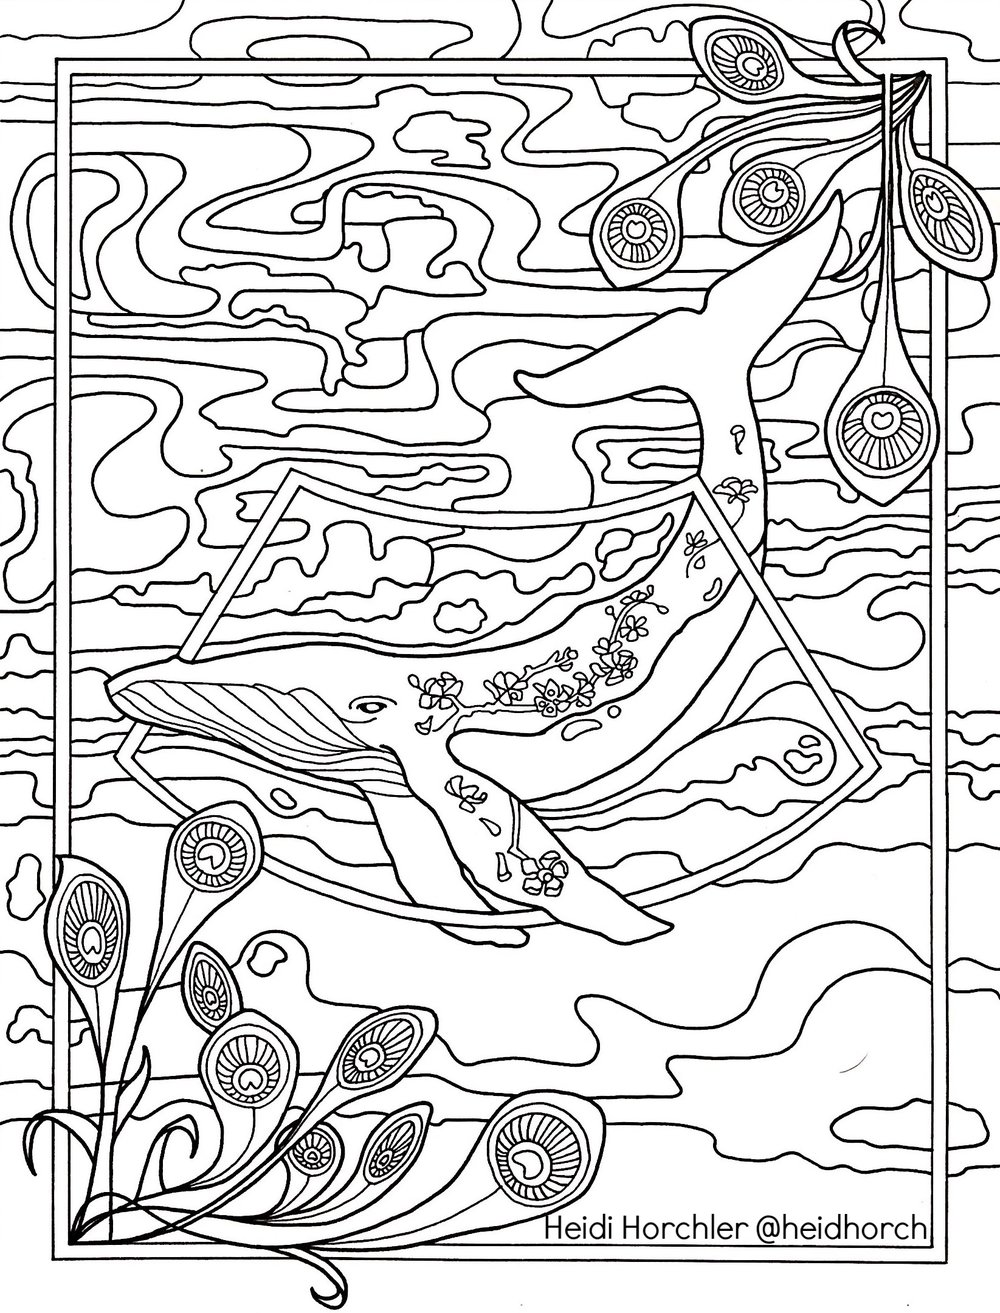 The Tattooed Whale - Daydream Odyssey coloring page